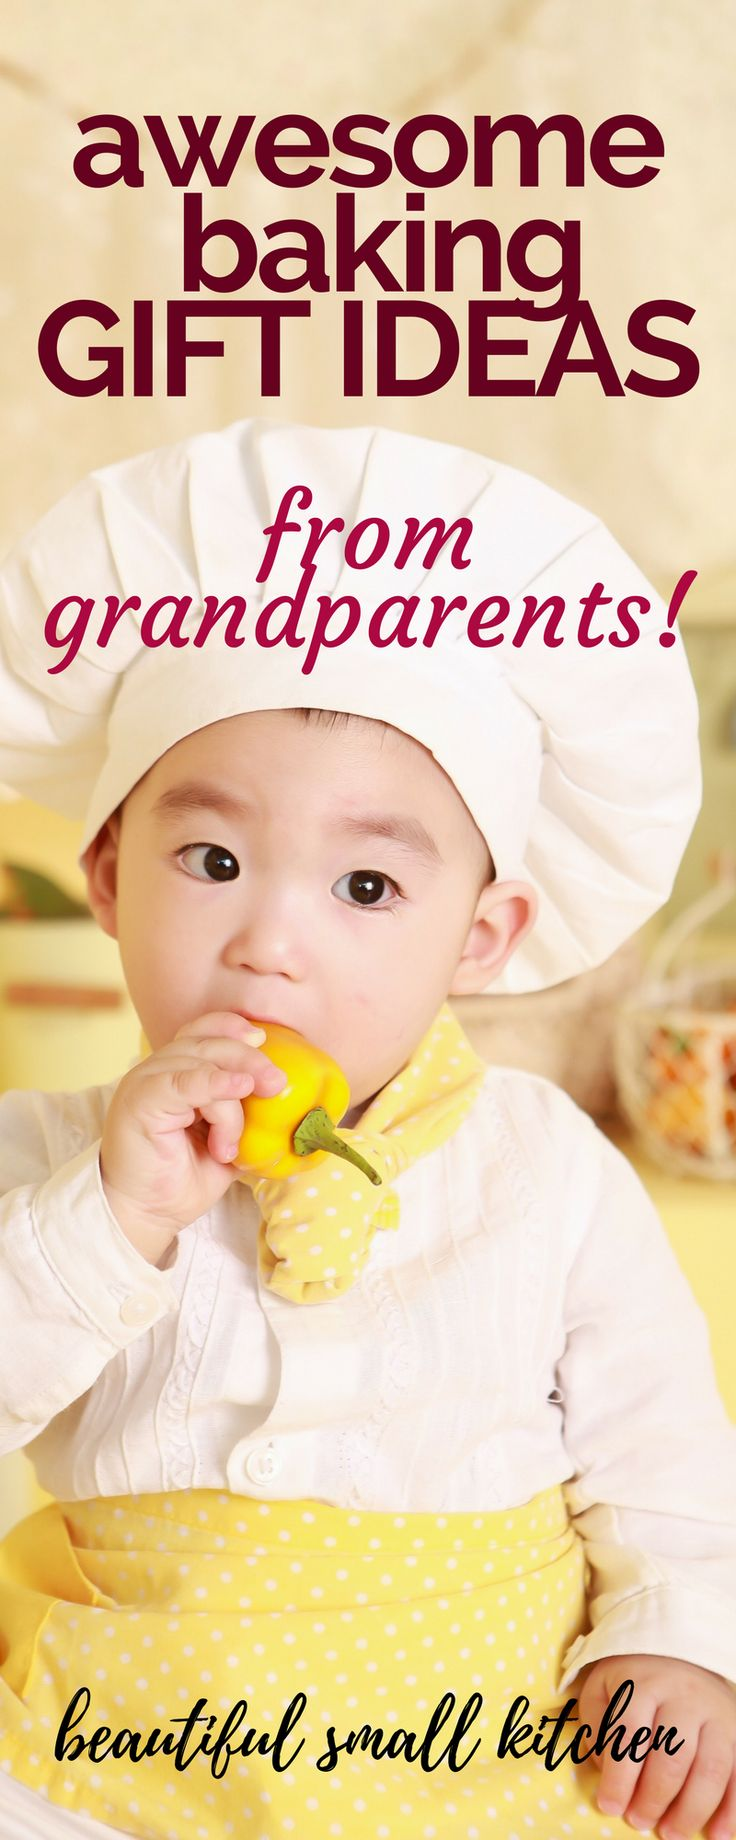 Baking gift ideas for toddlers, preschoolers and all little ones. Ideal for grandparents, parents, stocking fillers, favorite aunties etc. #grandchildren #giftsforpreschoolers #bakingwithkids #giftsforgrandchildren